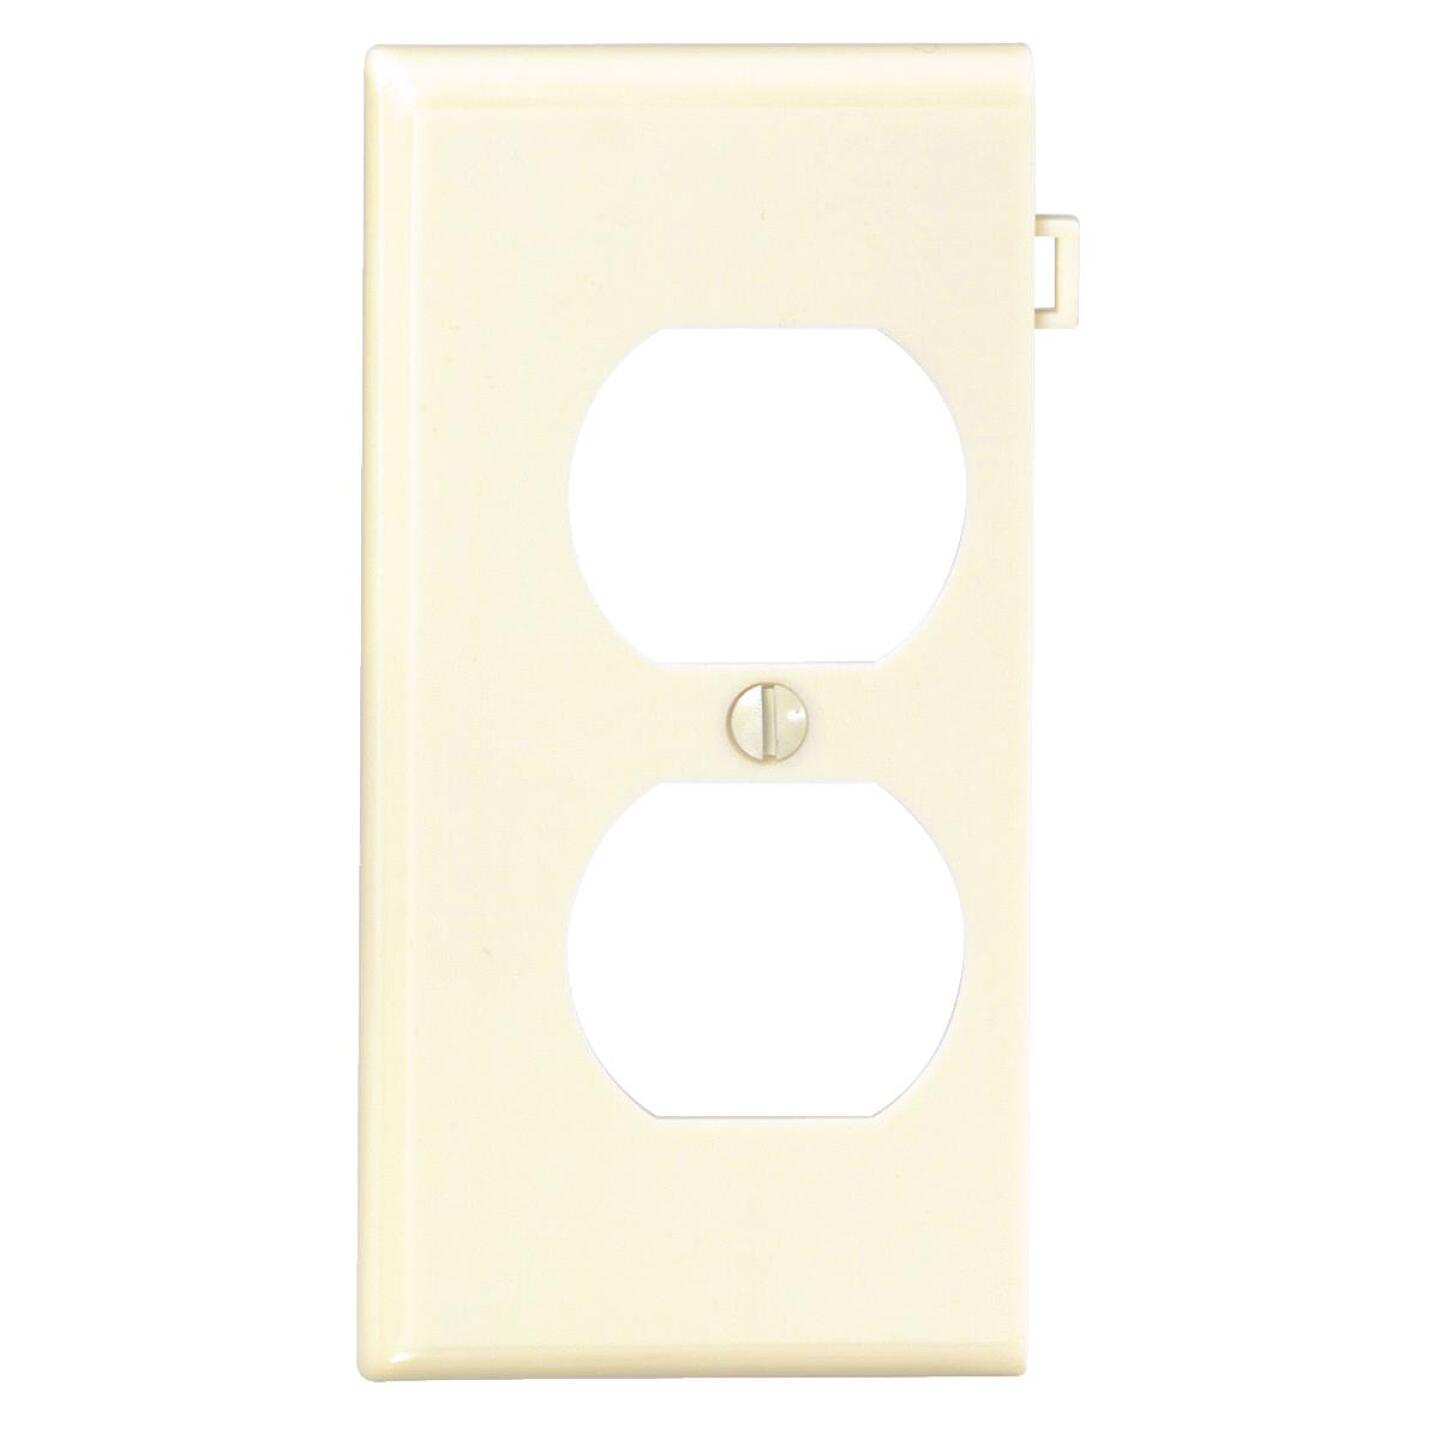 Leviton Duplex End Sectional 1-Gang Plastic Outlet Wall Plate, Ivory Image 1